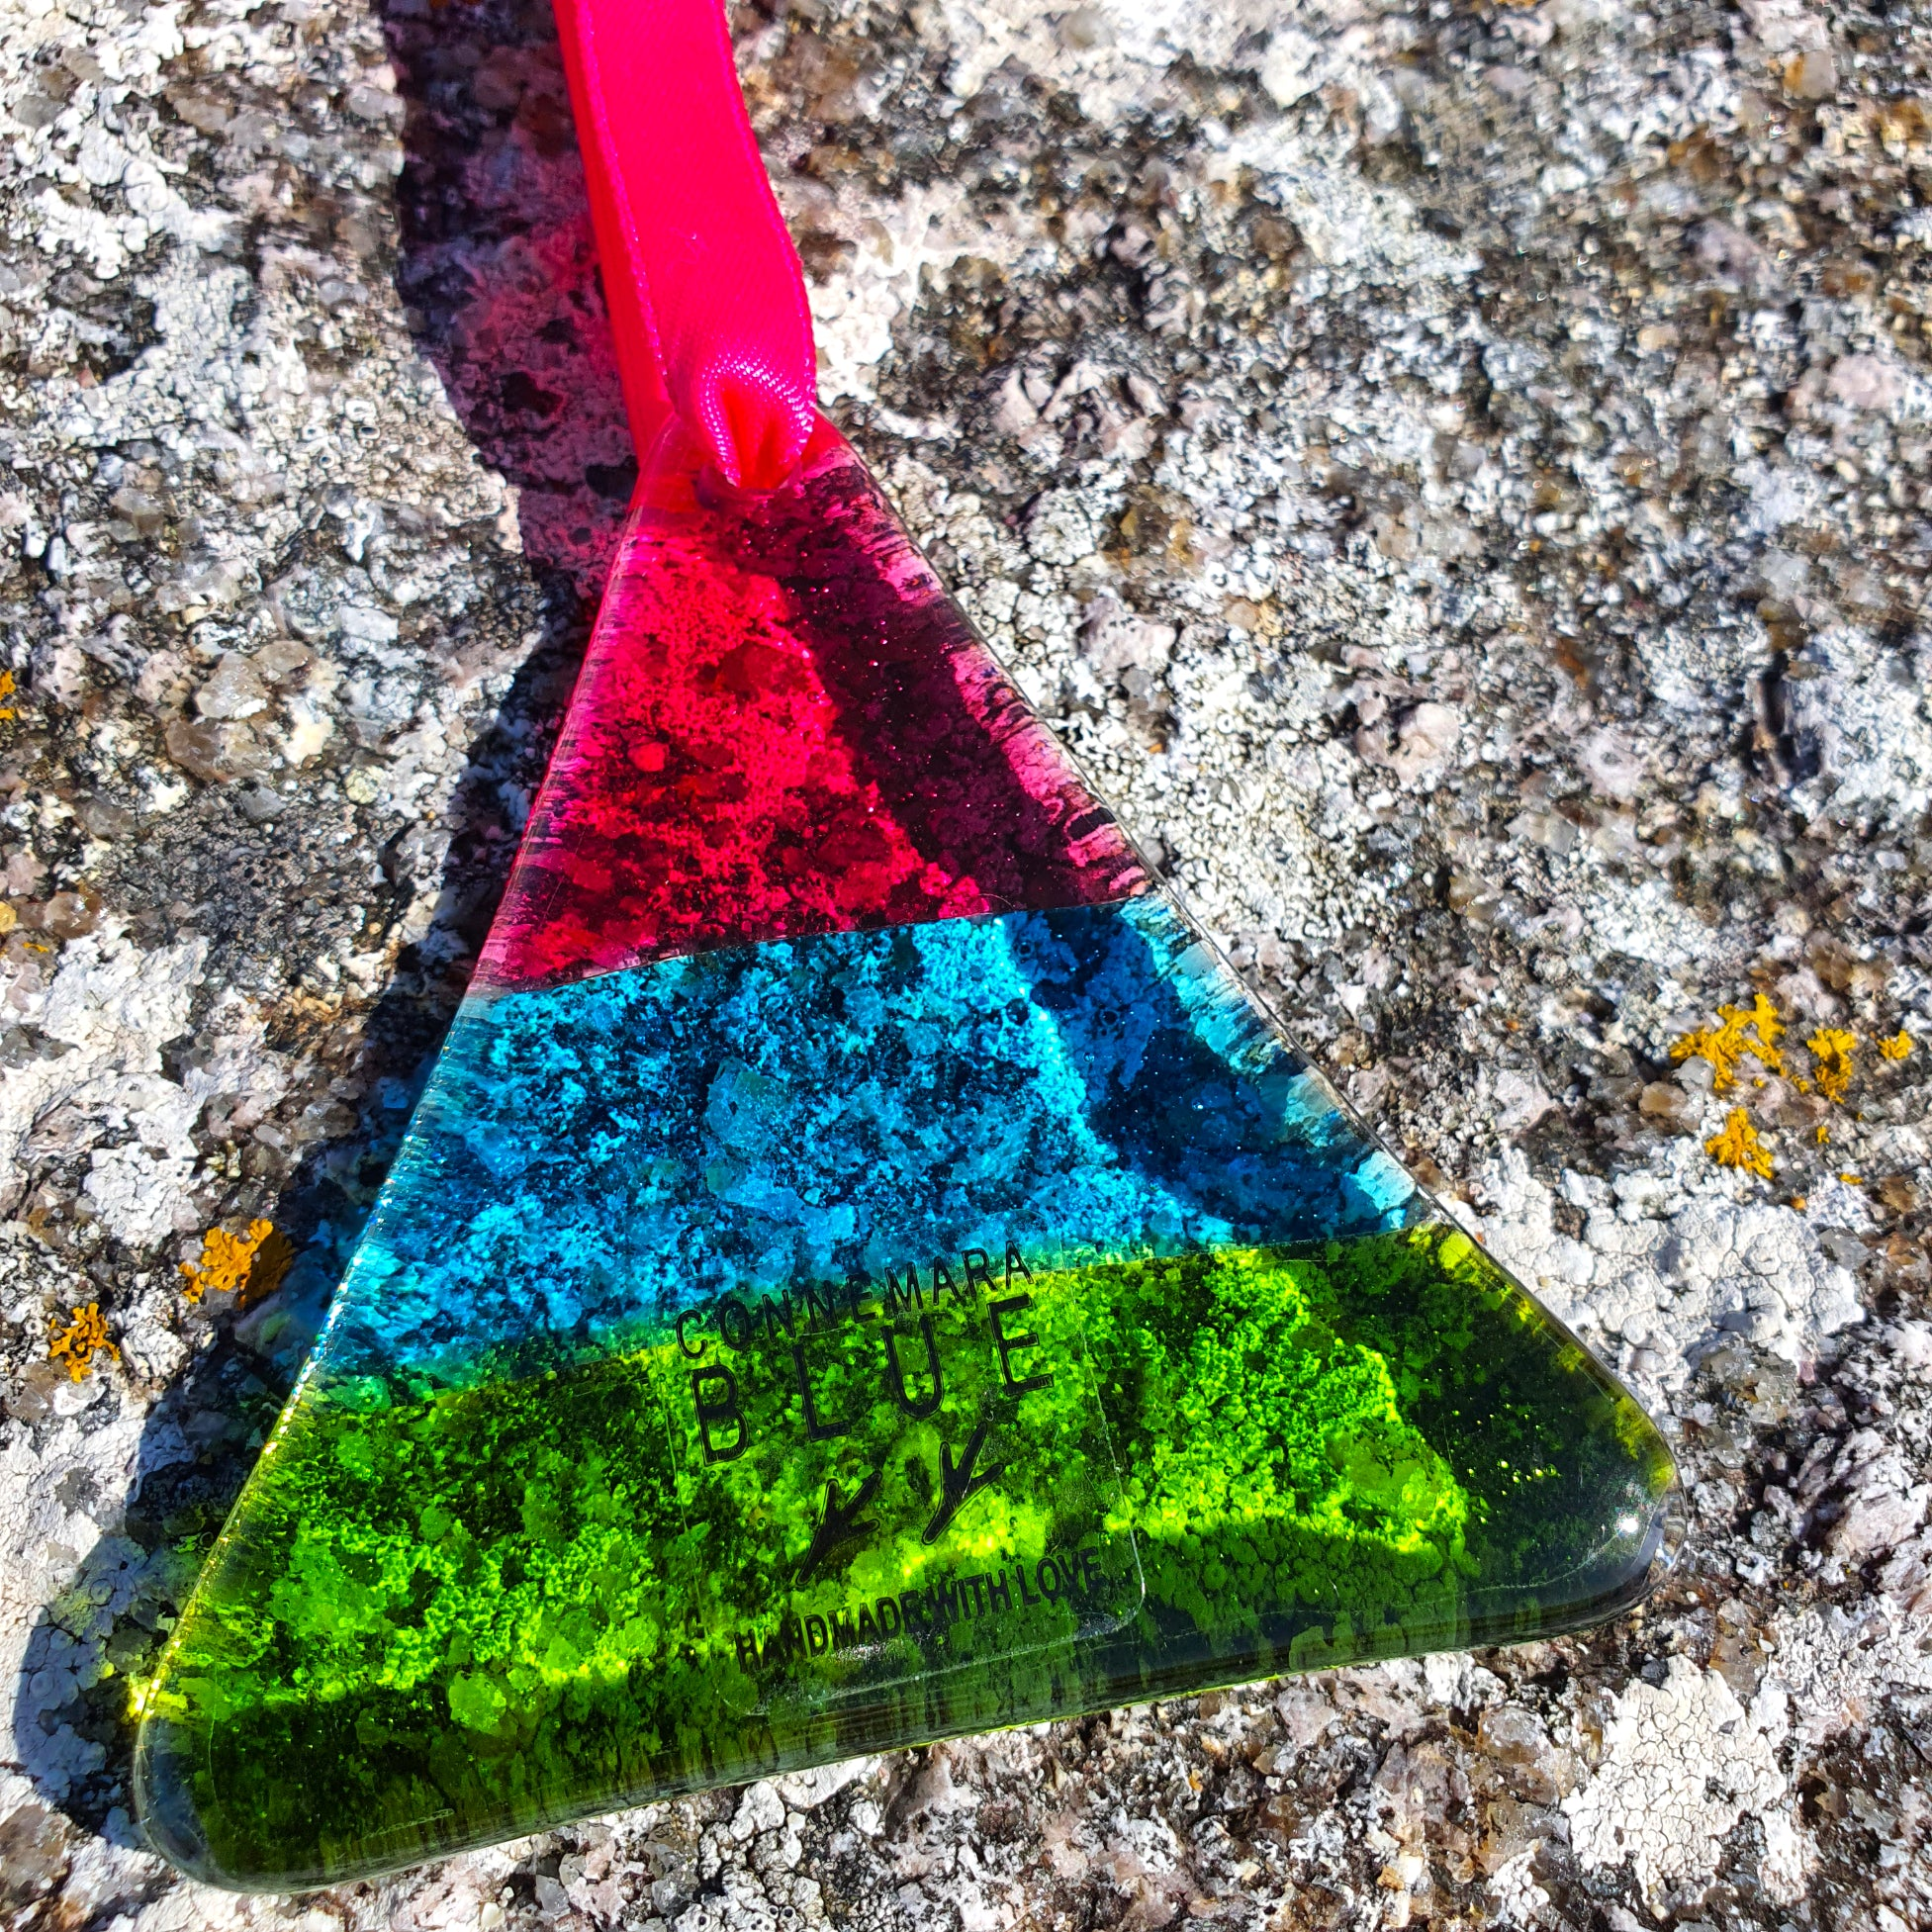 A fused glass hanging decoration in pink, blue and green, in the shape of a triangle